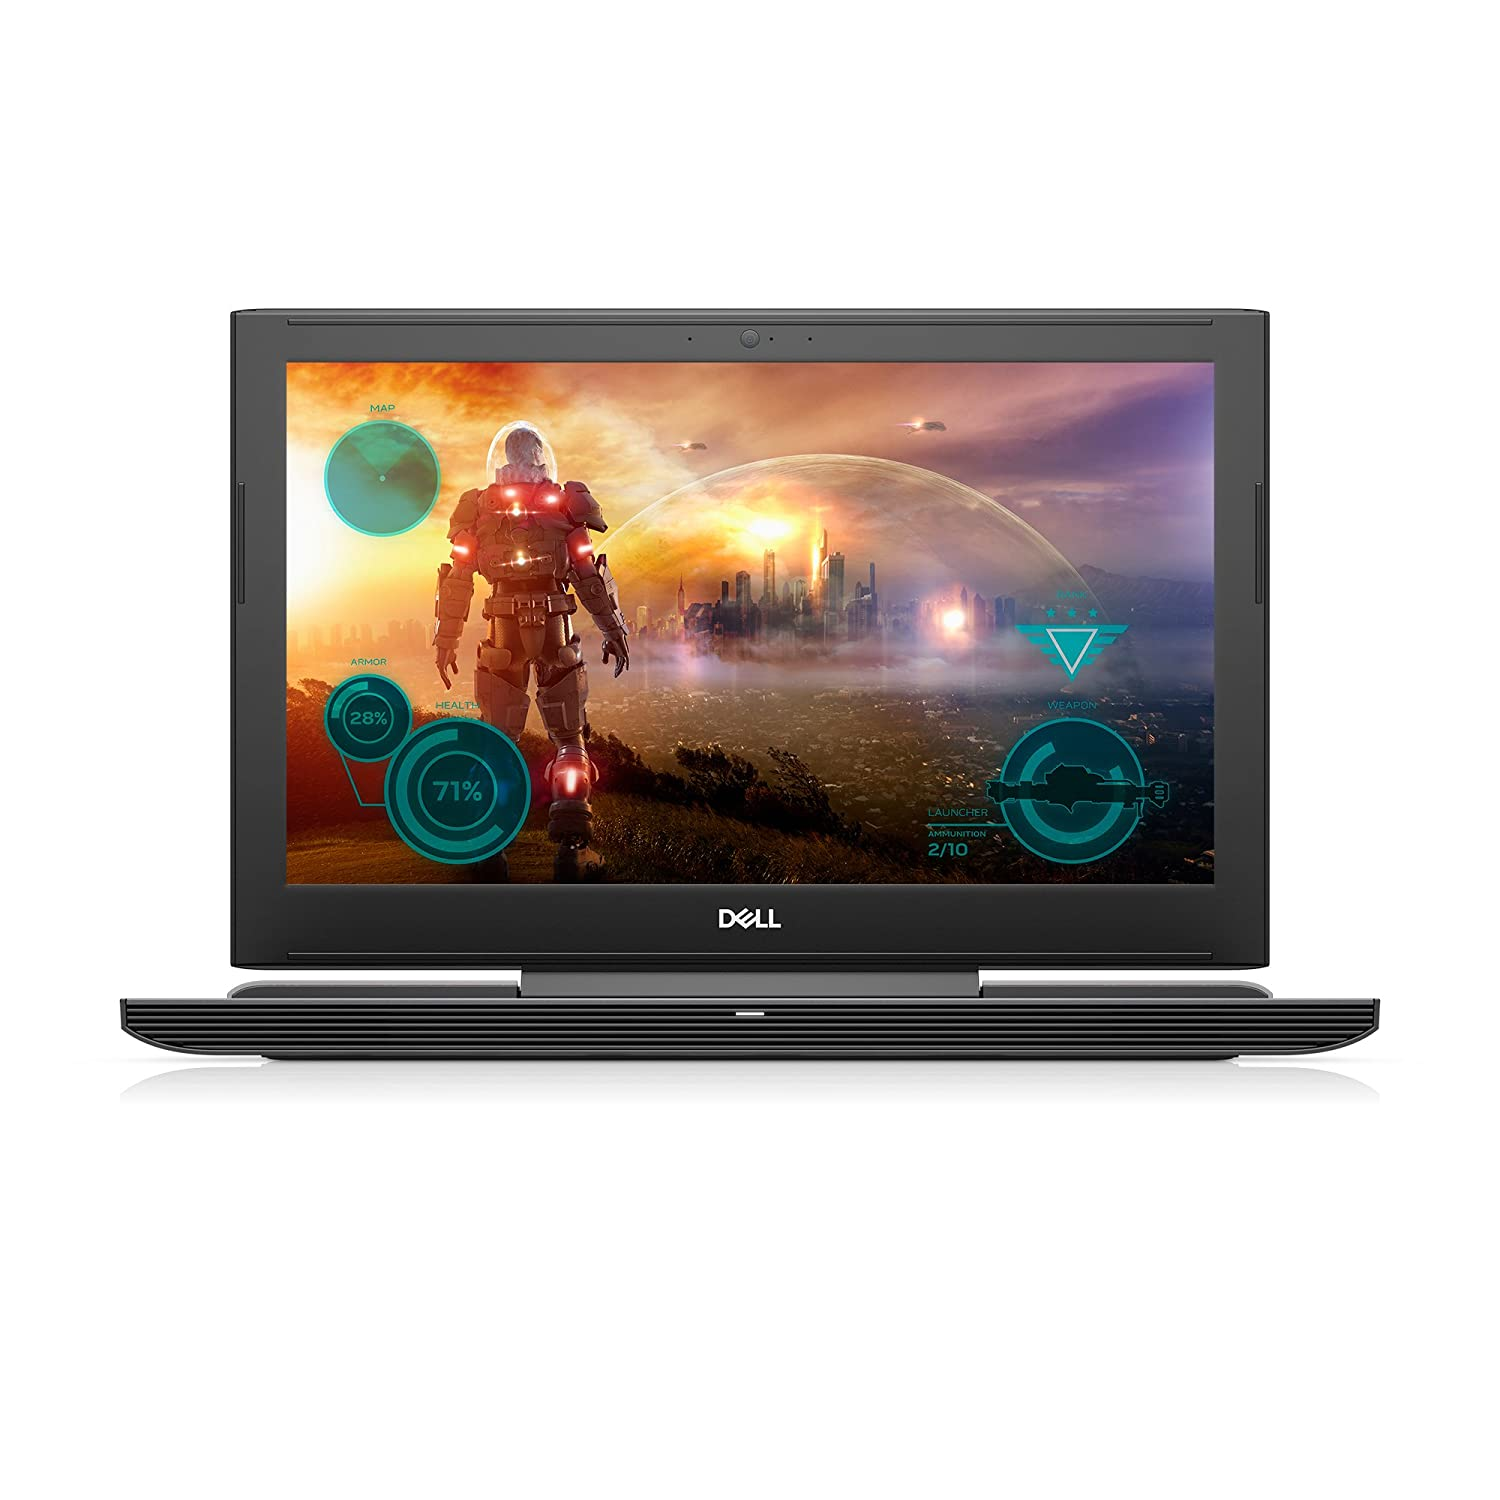 "Dell Laptop - 7th Gen Intel Core i5, GTX 1060 6GB Graphics, 8GB Memory, 128GB SSD + 1TB HDD, 15.6"", Matte Black"